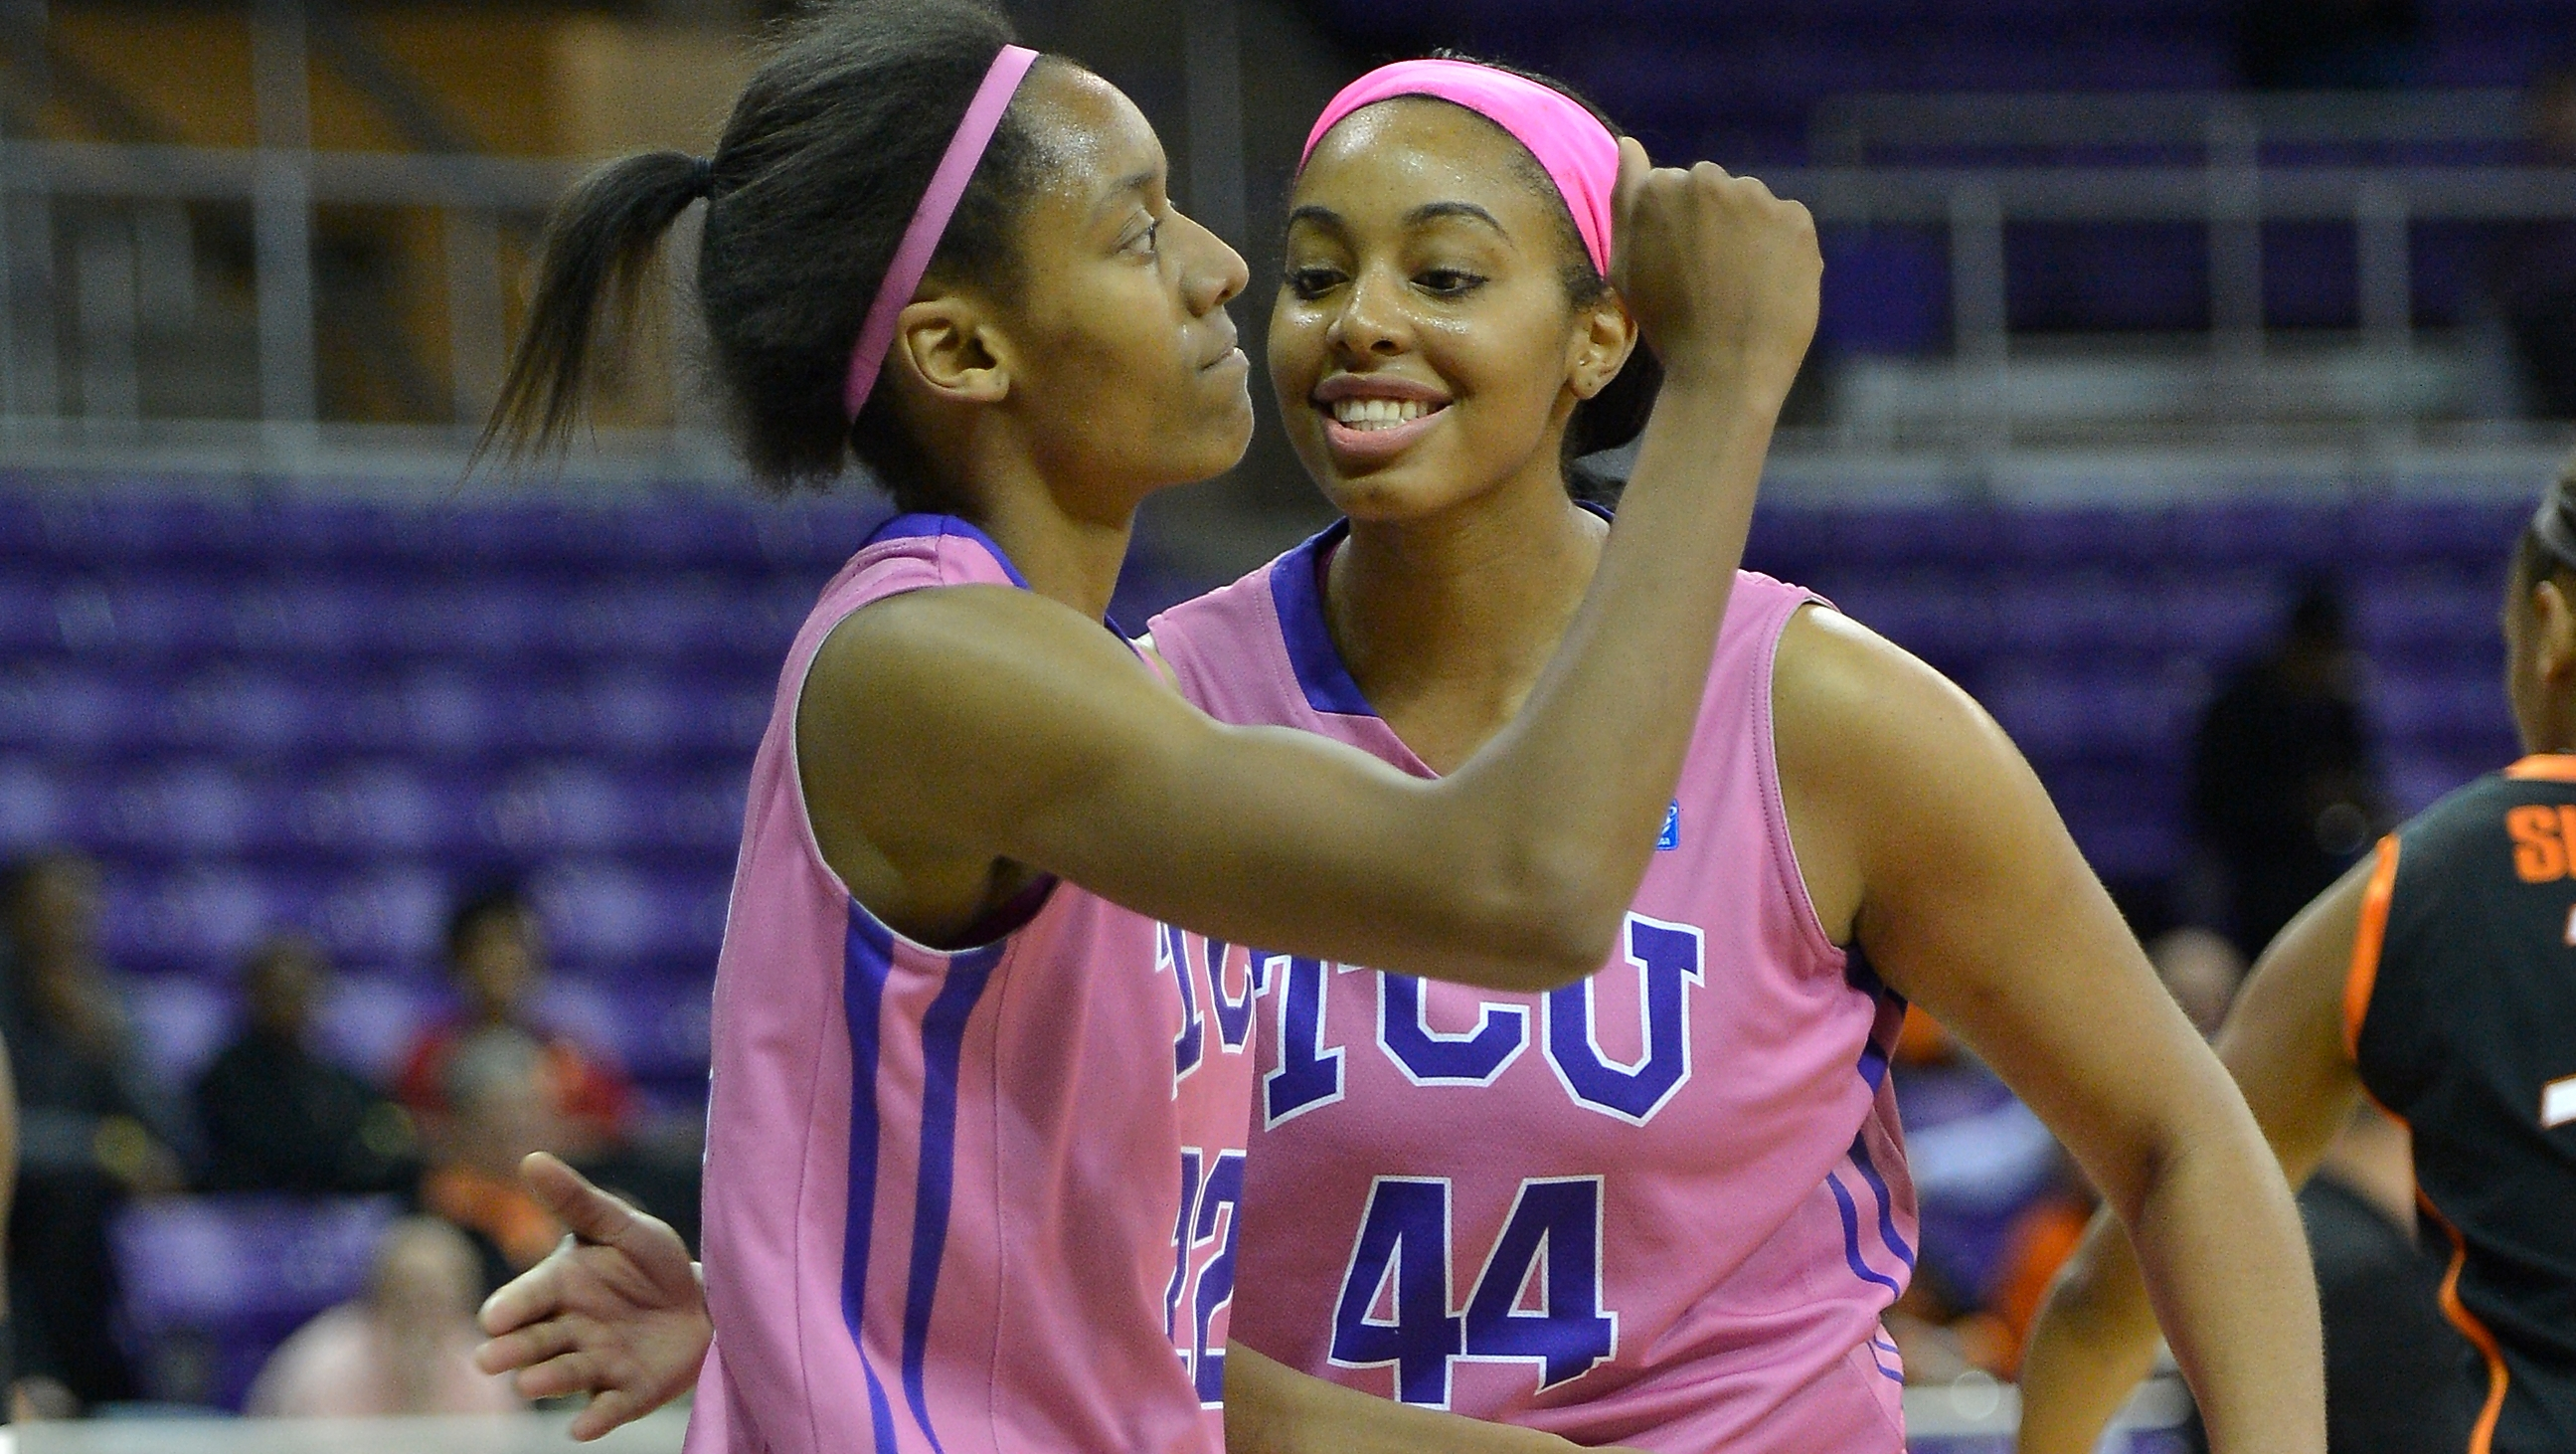 TCU takes down No. 23 Oklahoma State to record its first victory in Big 12 Conference play